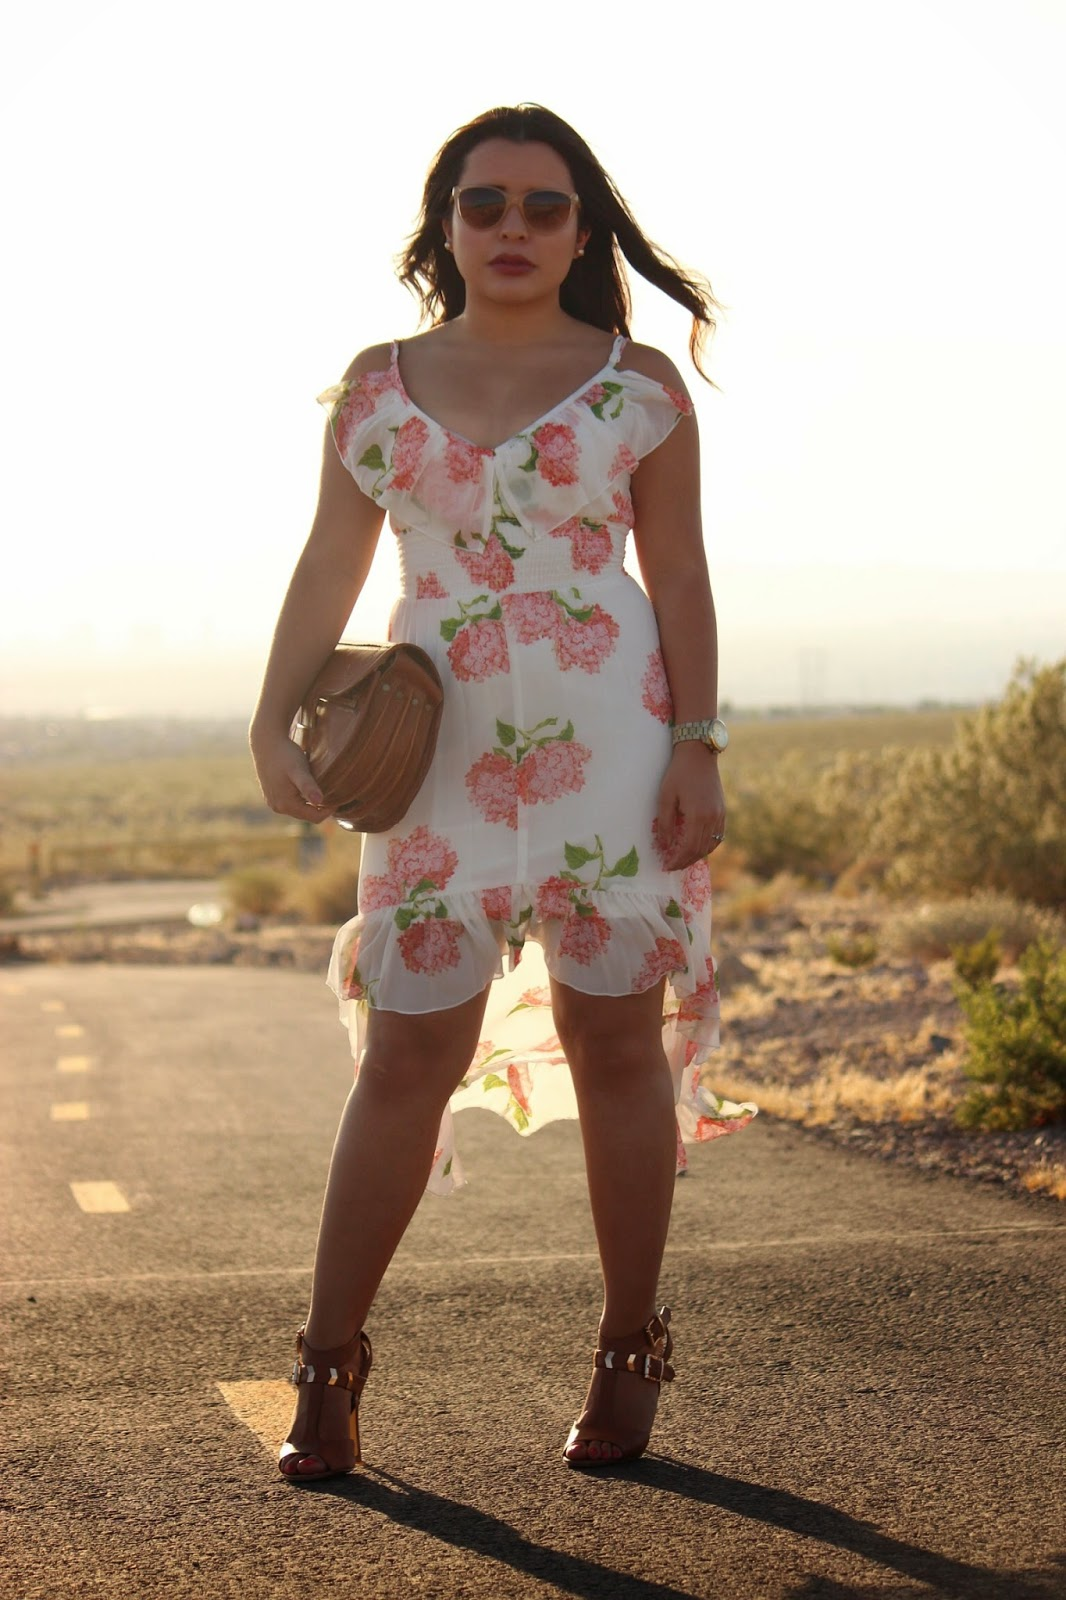 golden hour photography, white floral dress, how to dress a curvy body, latina style blogger